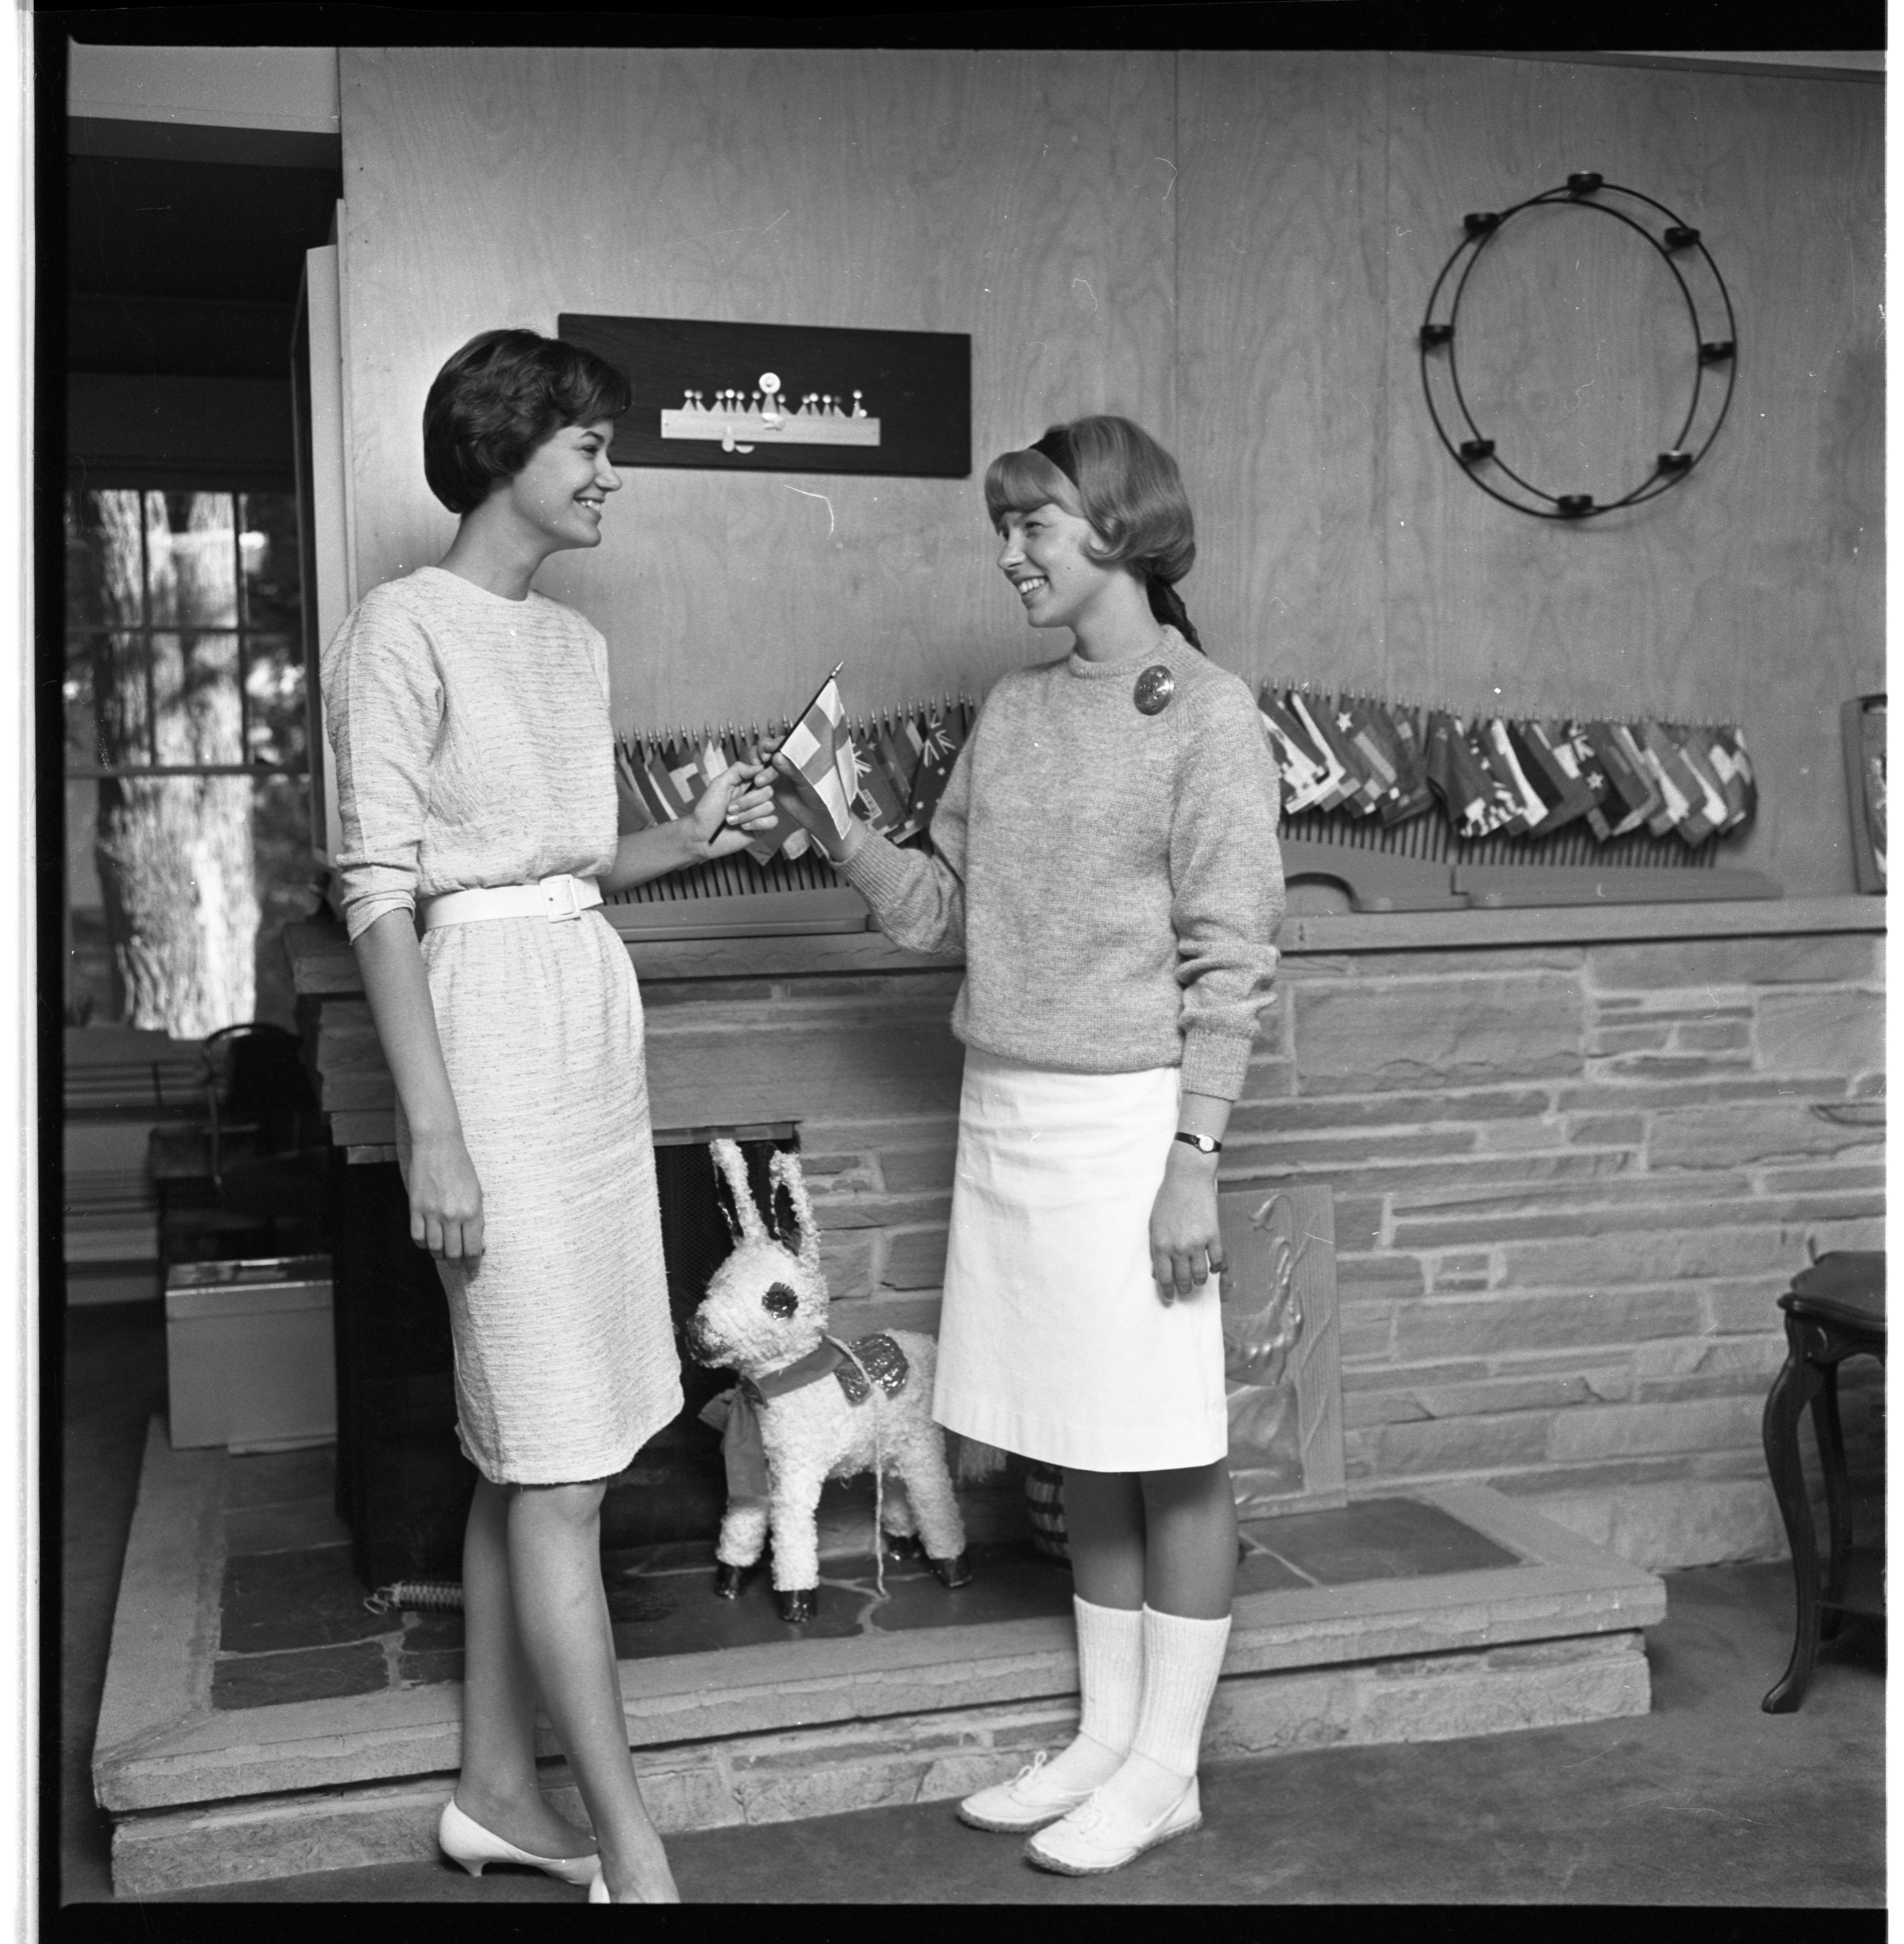 Becky Piper Welcomes Pirkko Paaermaa of Finland, August 1963 image